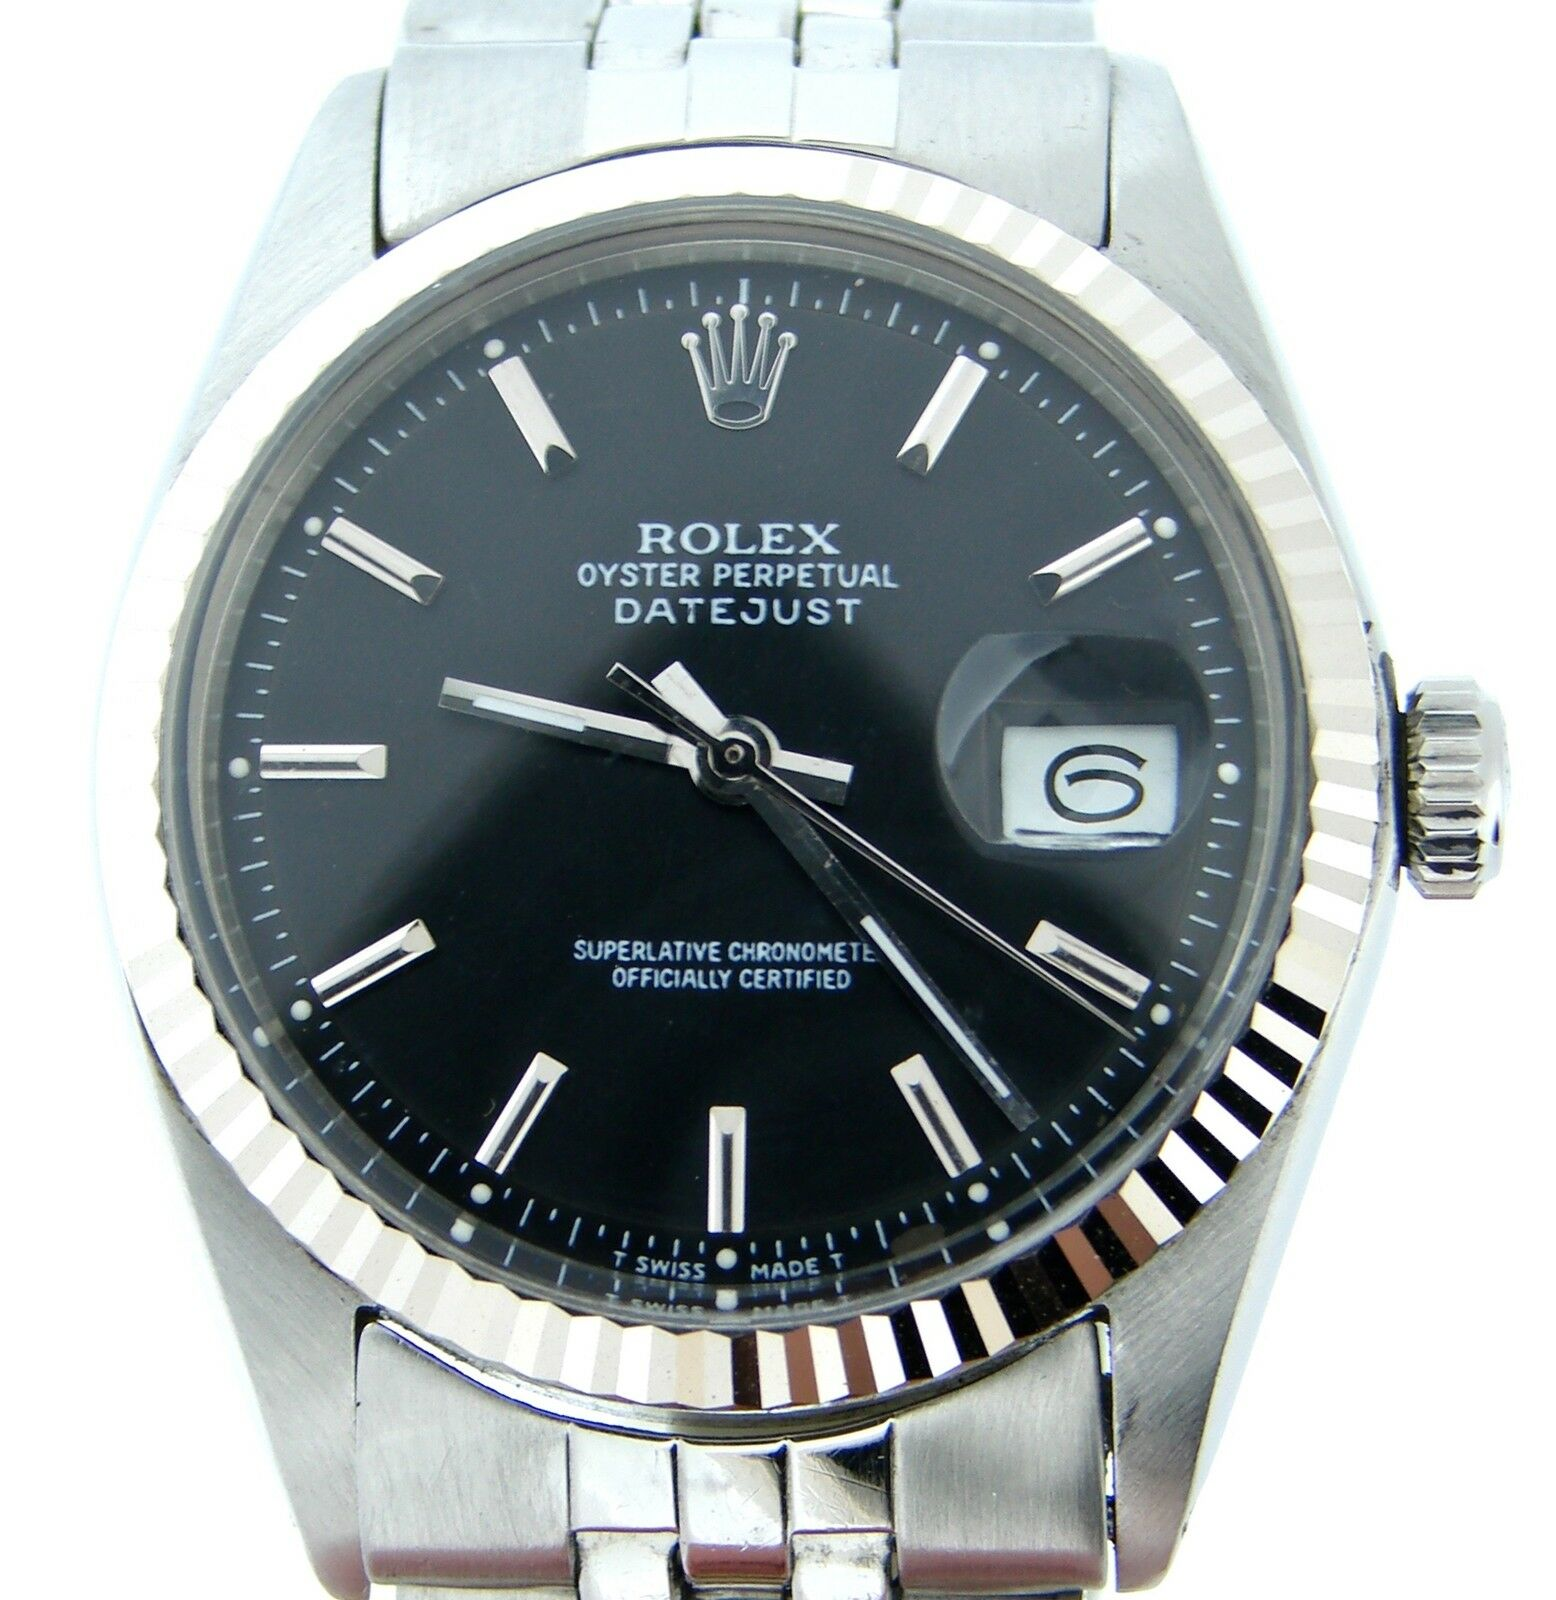 Mens Rolex Stainless Steel/18K White Gold Datejust Black w/Jubilee Band 1601 - watch picture 1